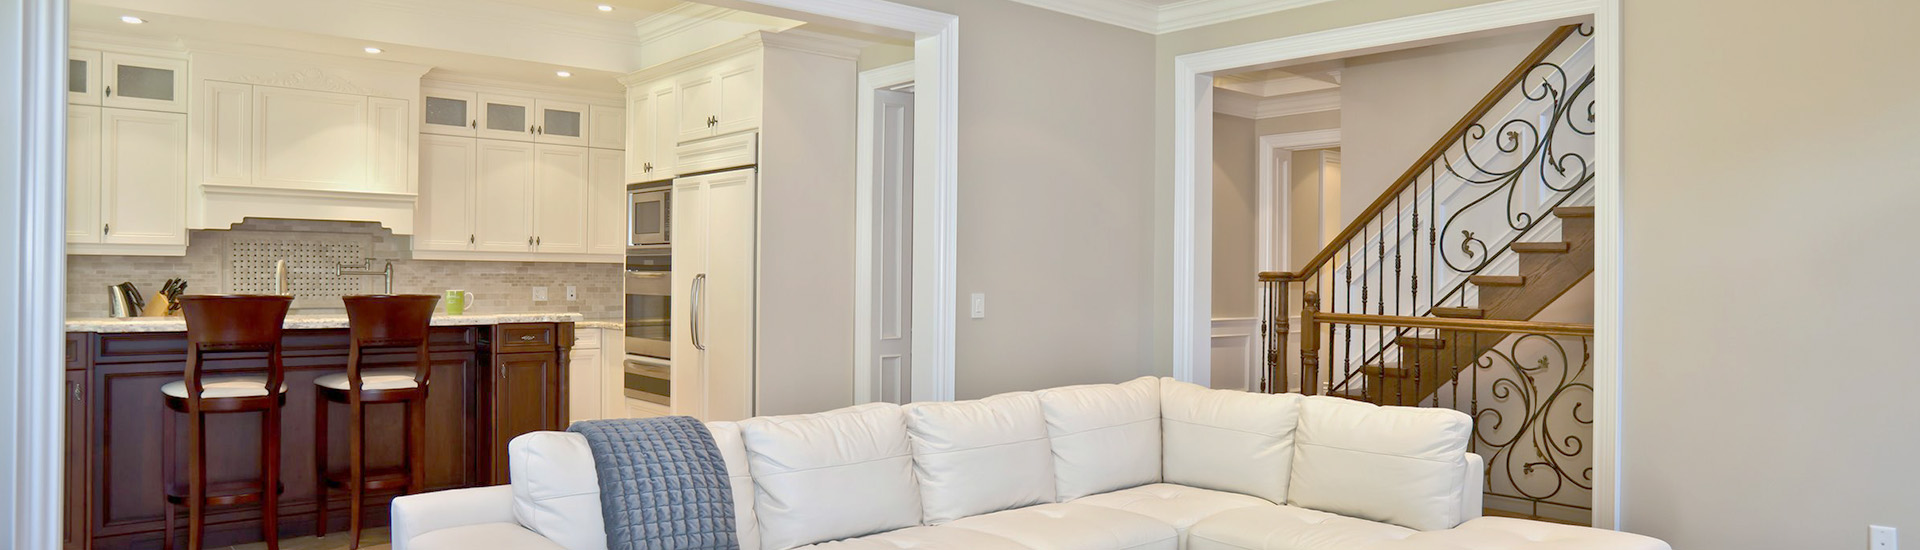 Norby Painting - Interior Painting